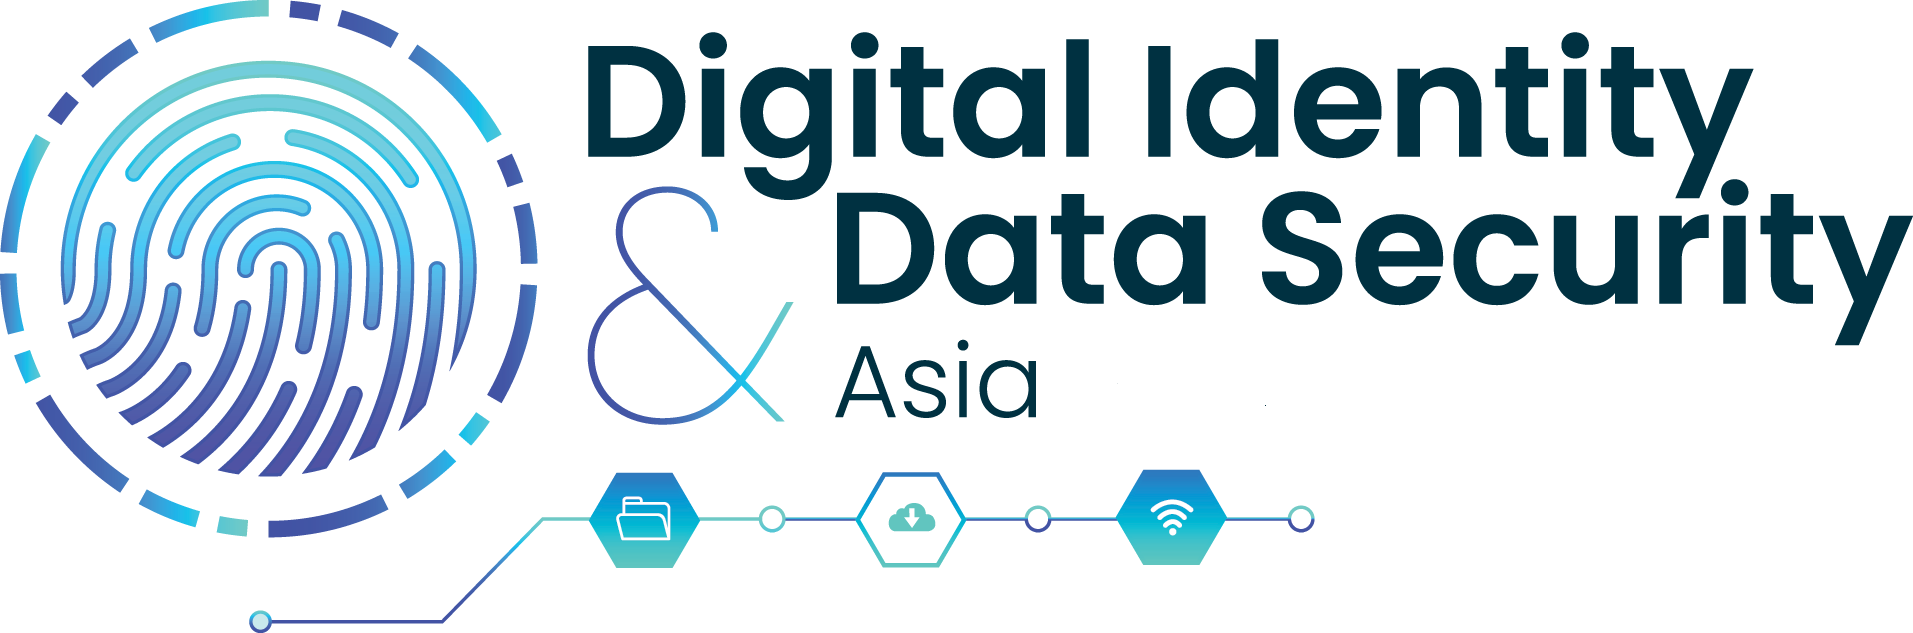 Digital Identity & Data Security Asia 2021